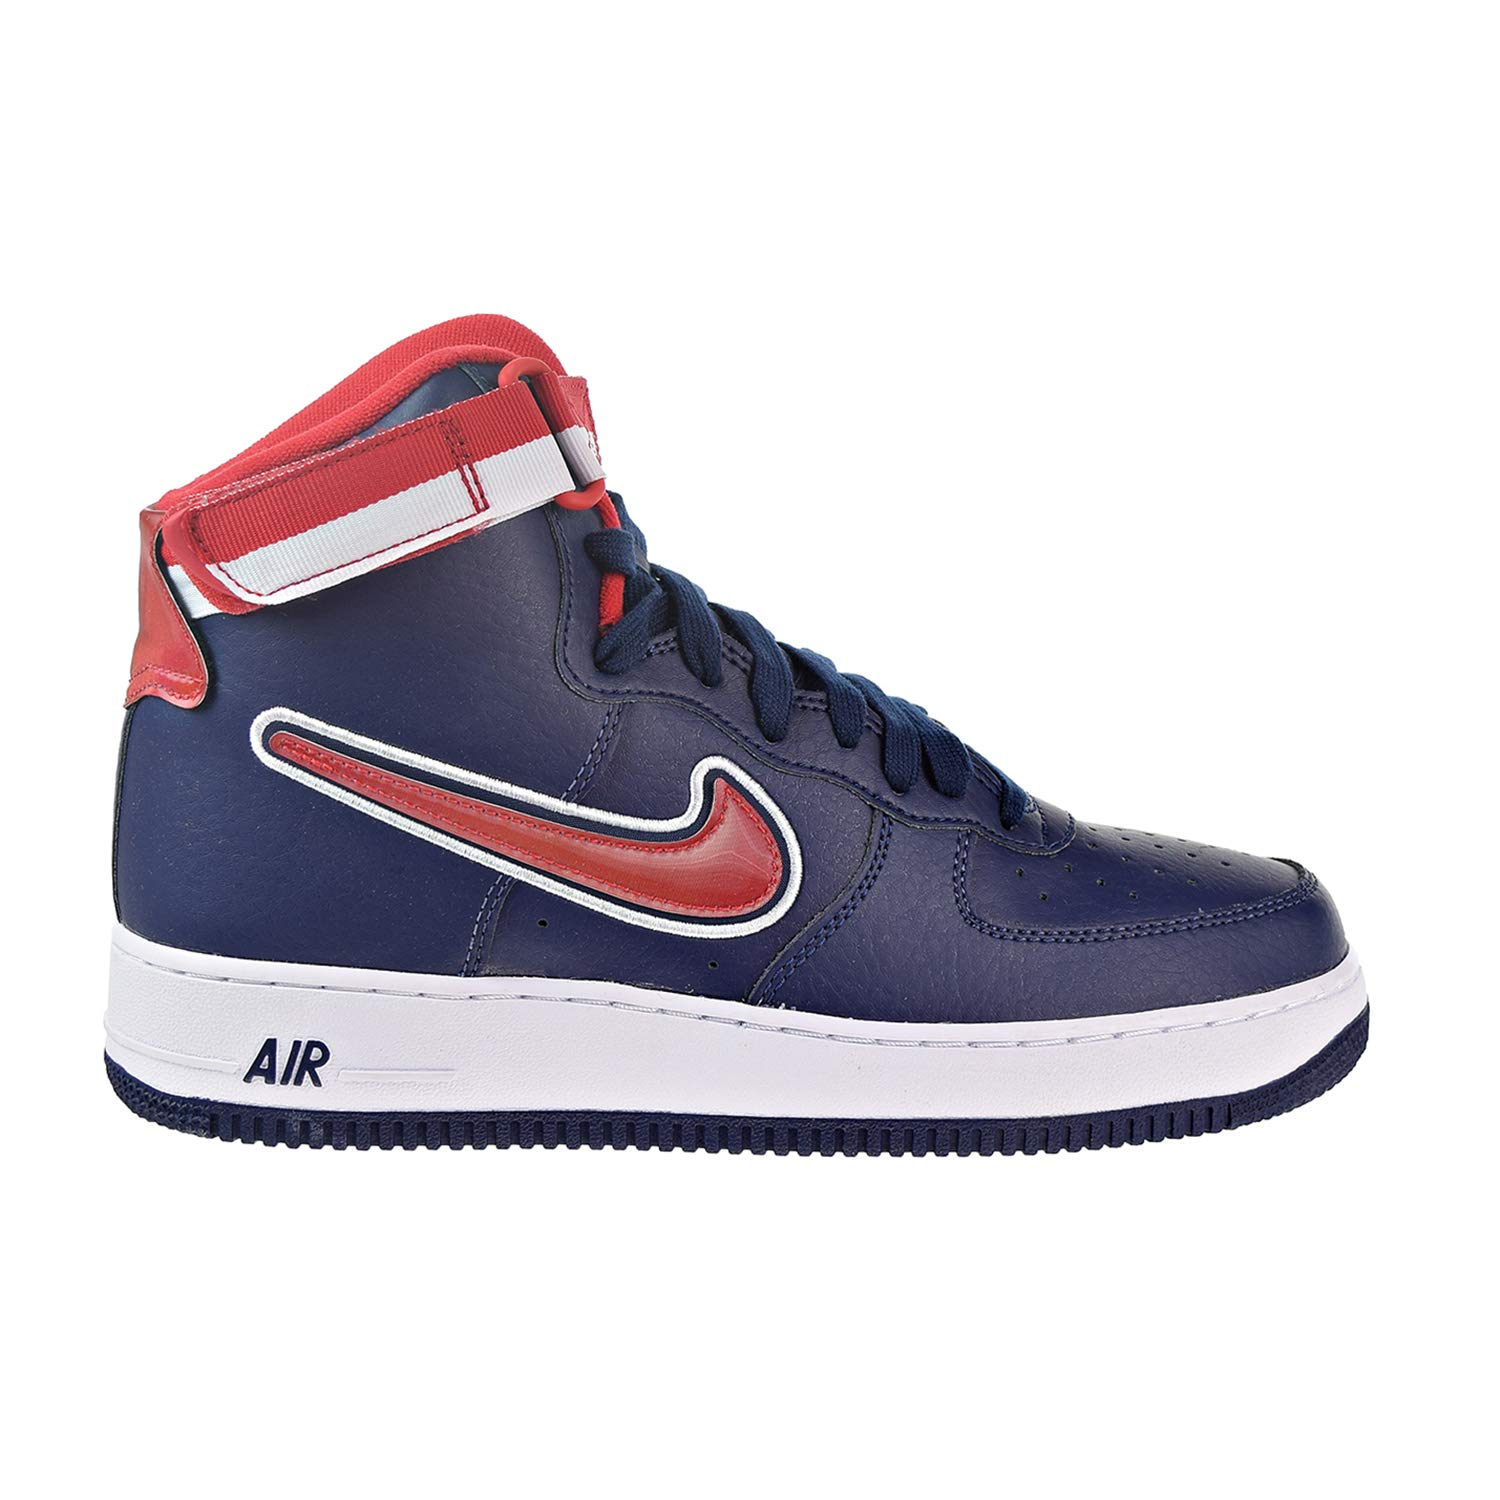 20c879743 Amazon.com | NIKE Men's Air Force 1 High 07 LV8 Sport, Midnight Navy/University  RED, 10 M US | Basketball